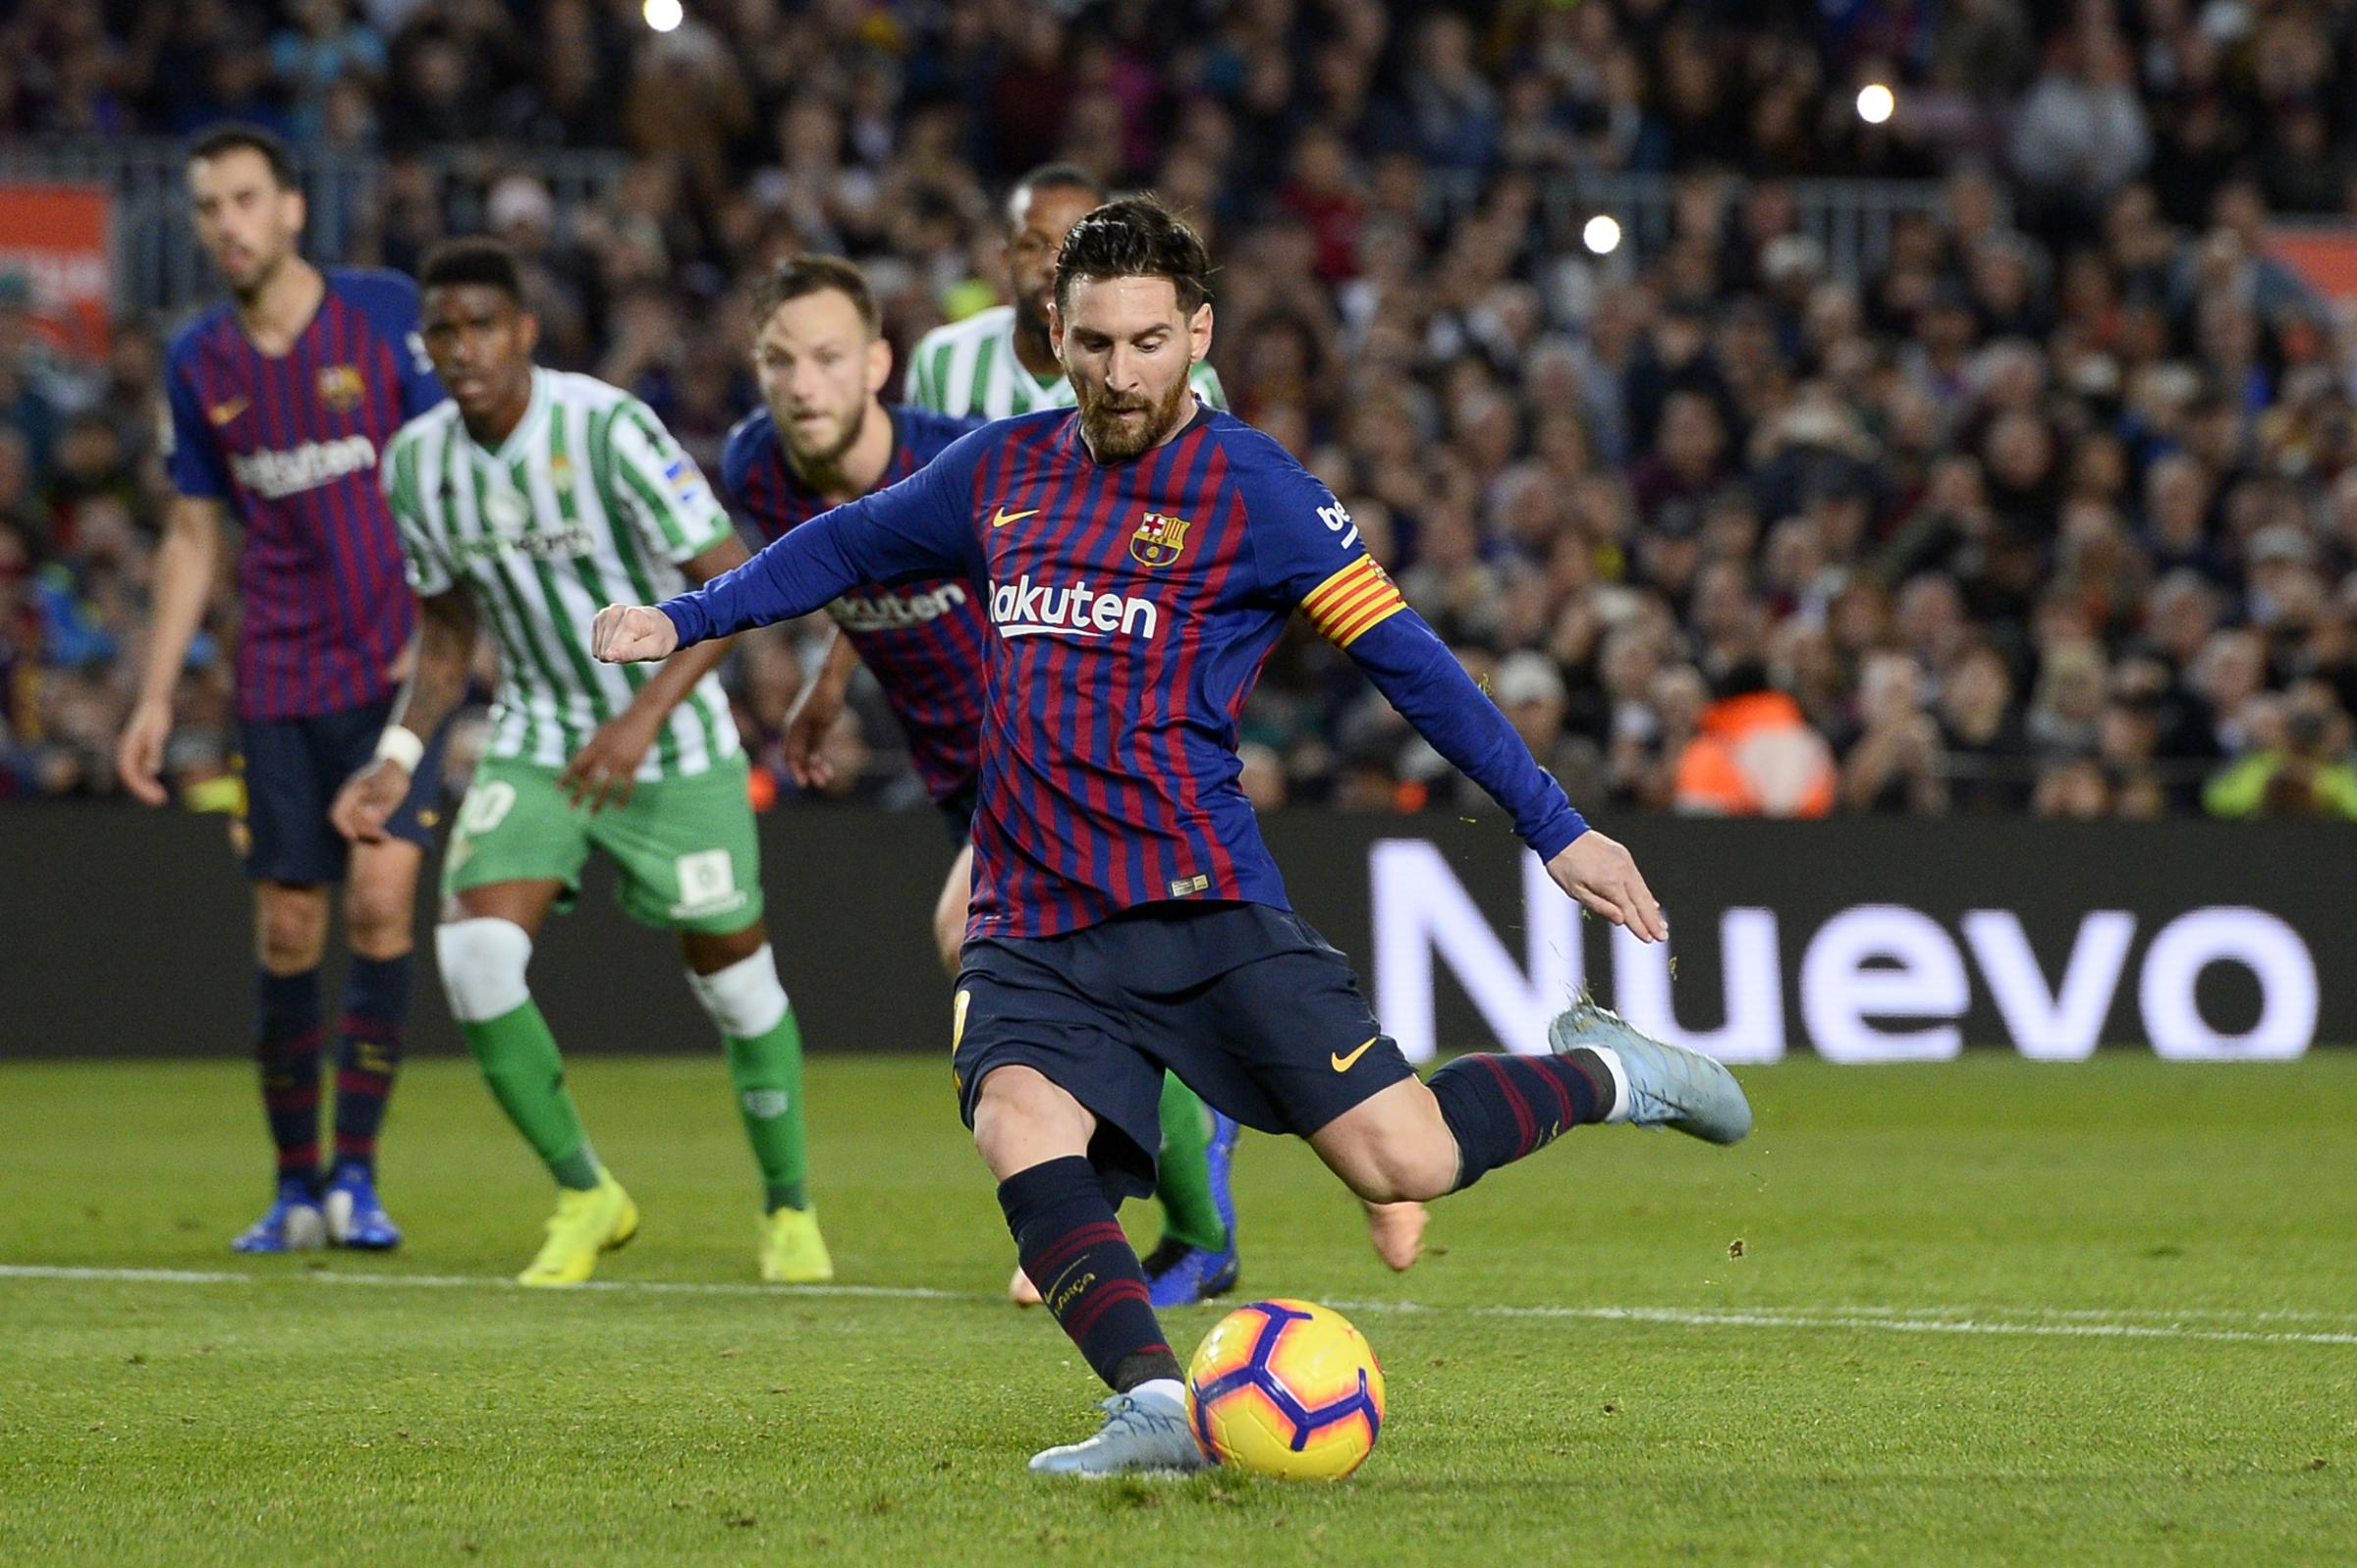 Lionel Messi is one of the greatest players of all time but has a below-average penalty conversion rate